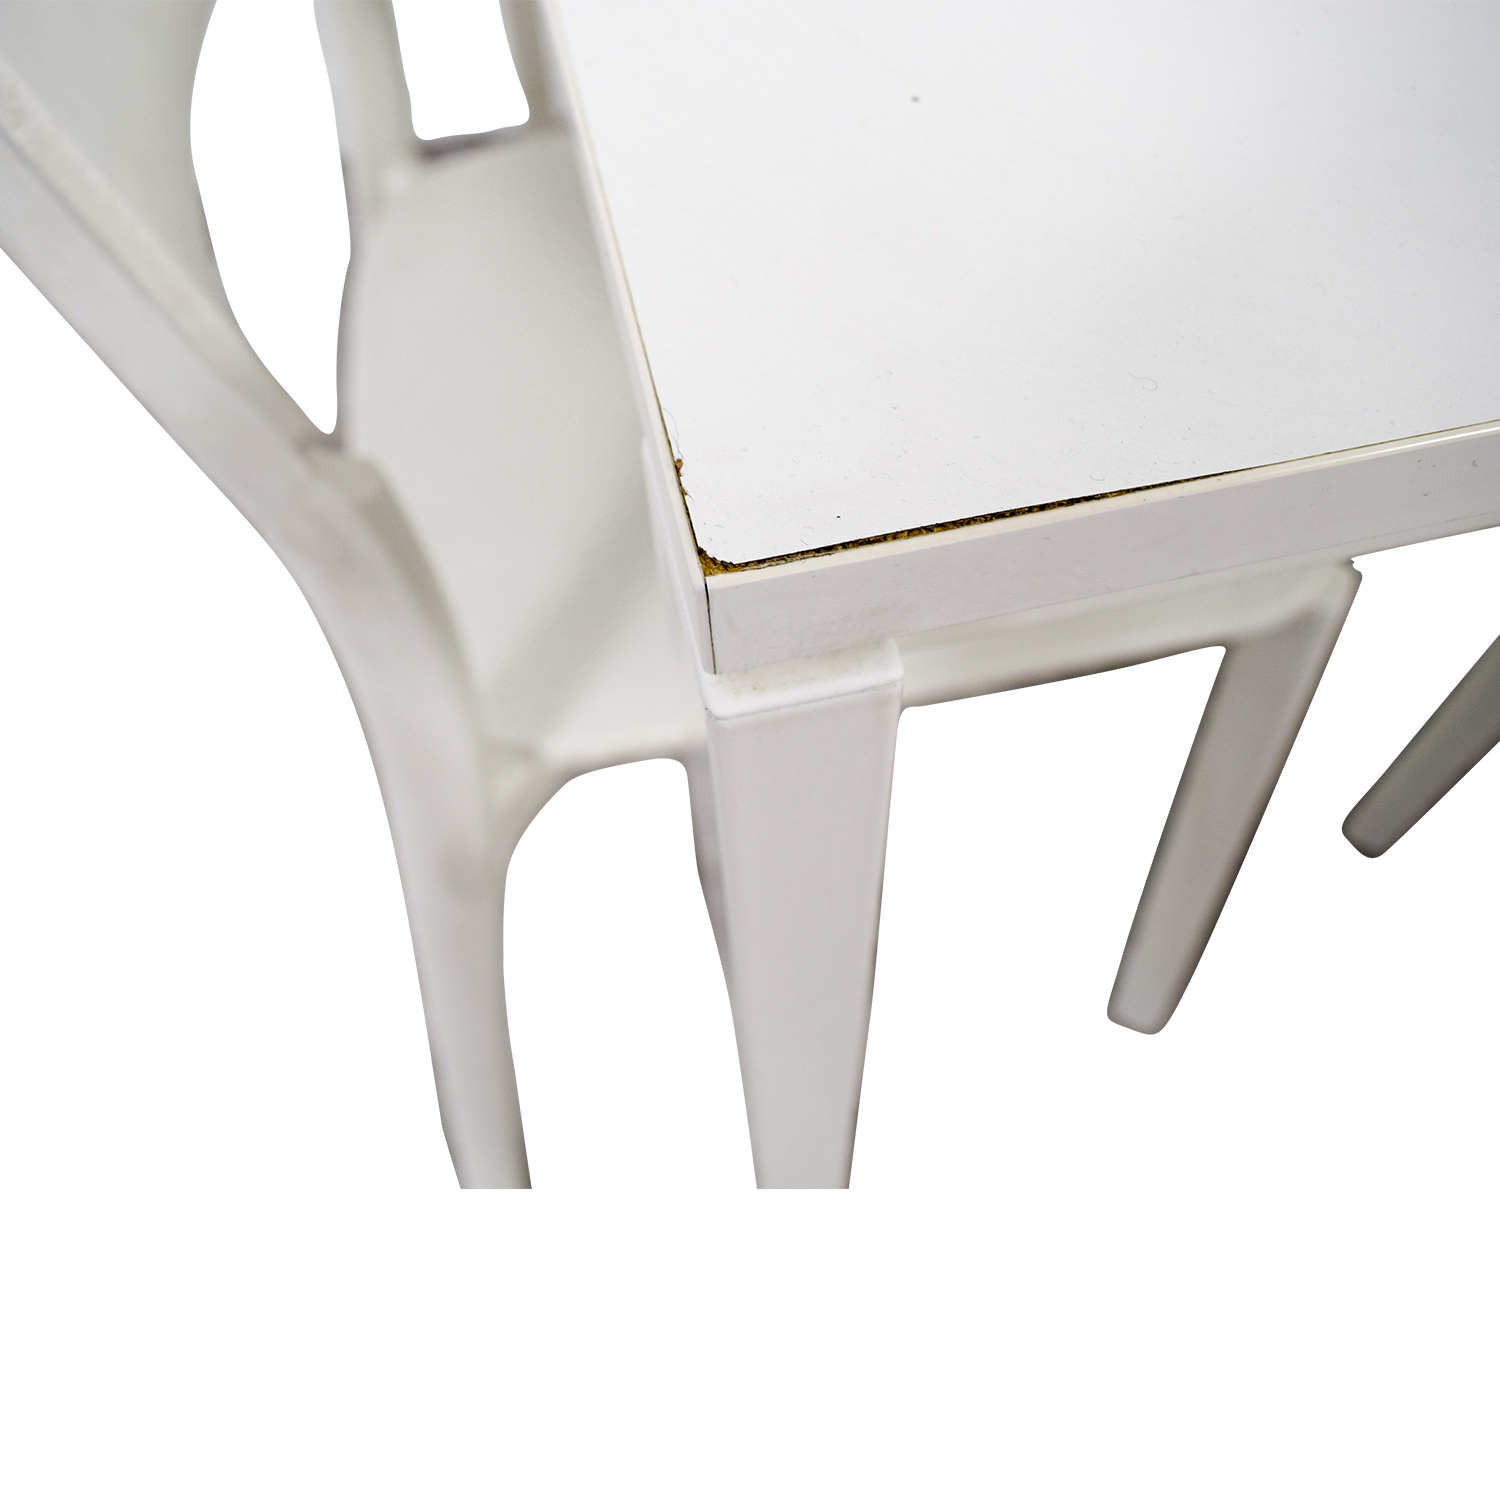 White Kitchen Tables And Chairs: IKEA IKEA White Kitchen Table And Chairs / Tables